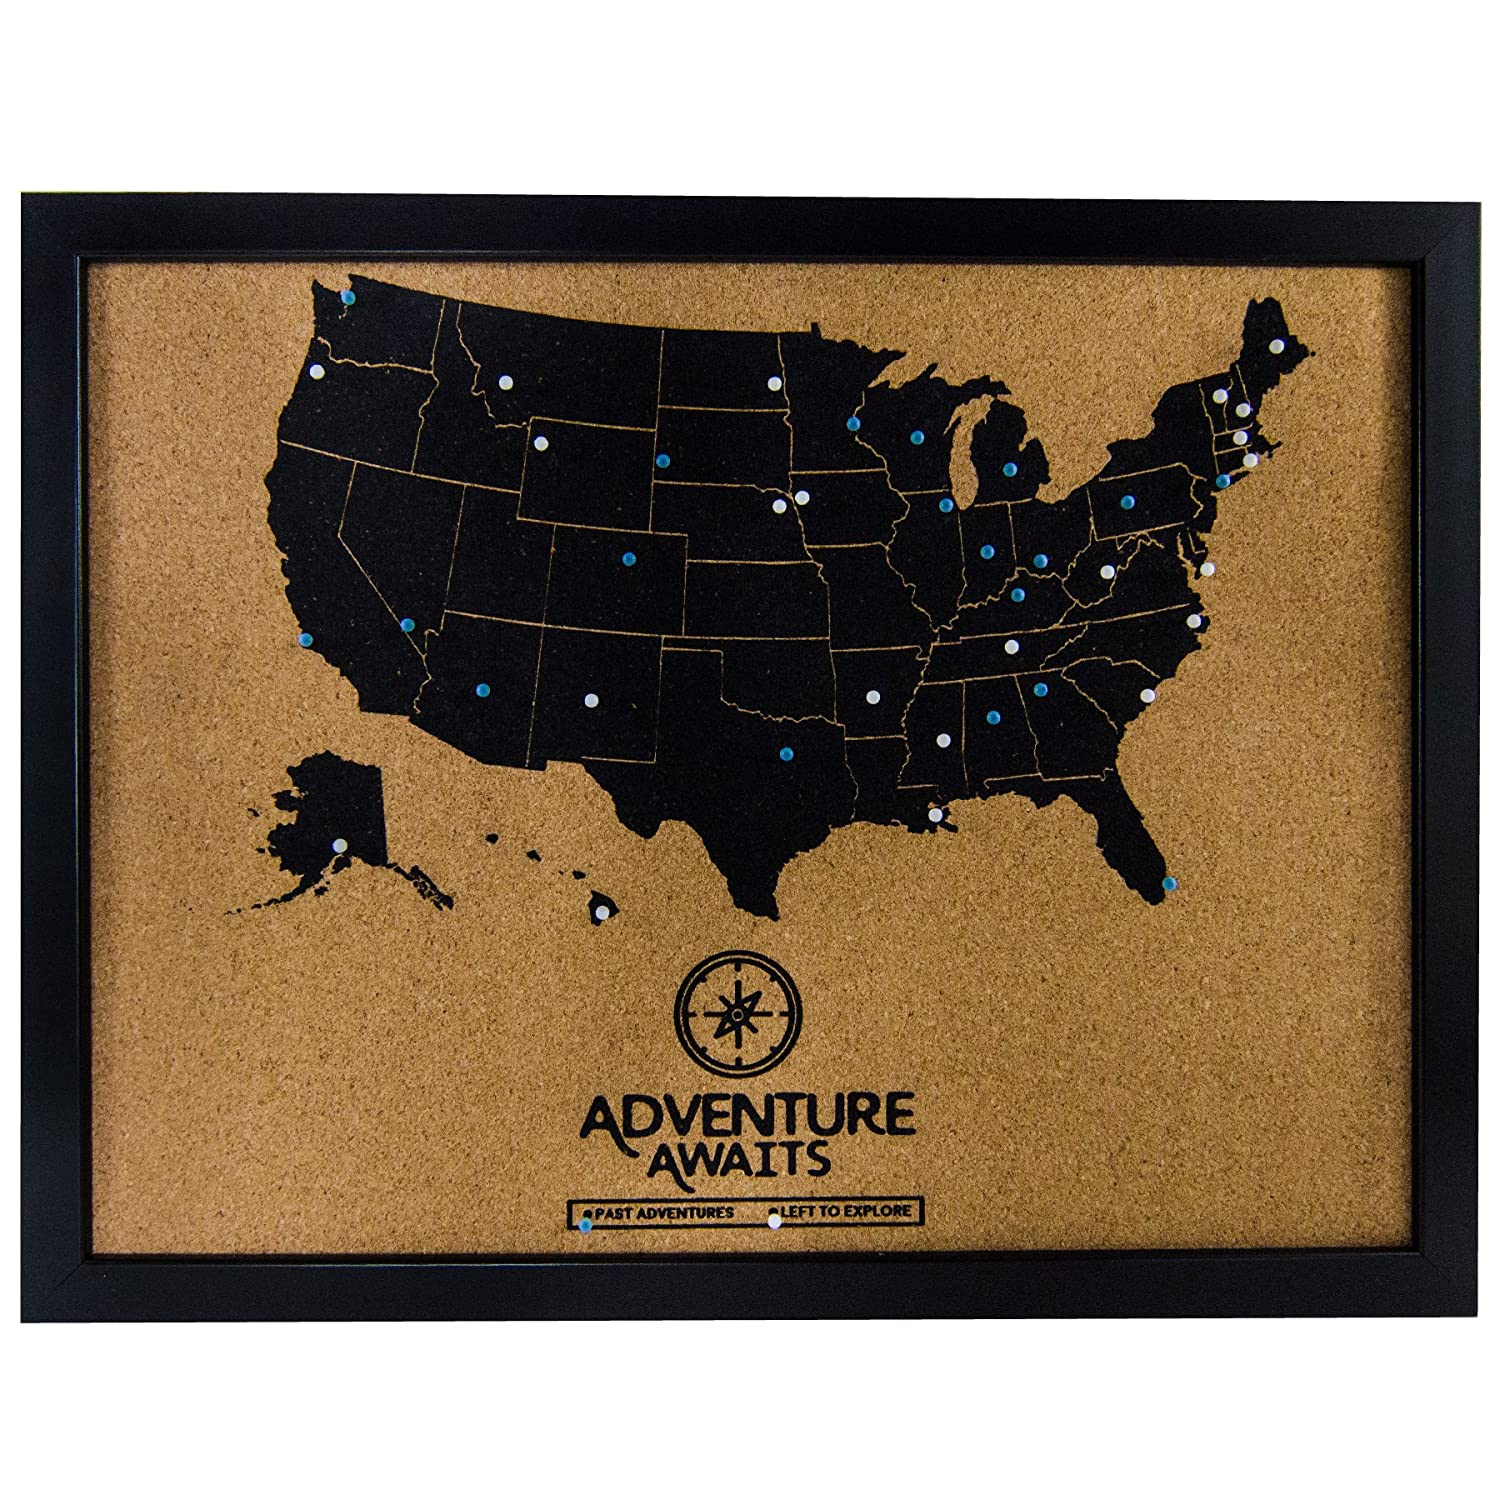 Pushpin Cork Board USA Map and Pins | US Travel Tracker Map to Track Past  and Future Bucket List Destinations